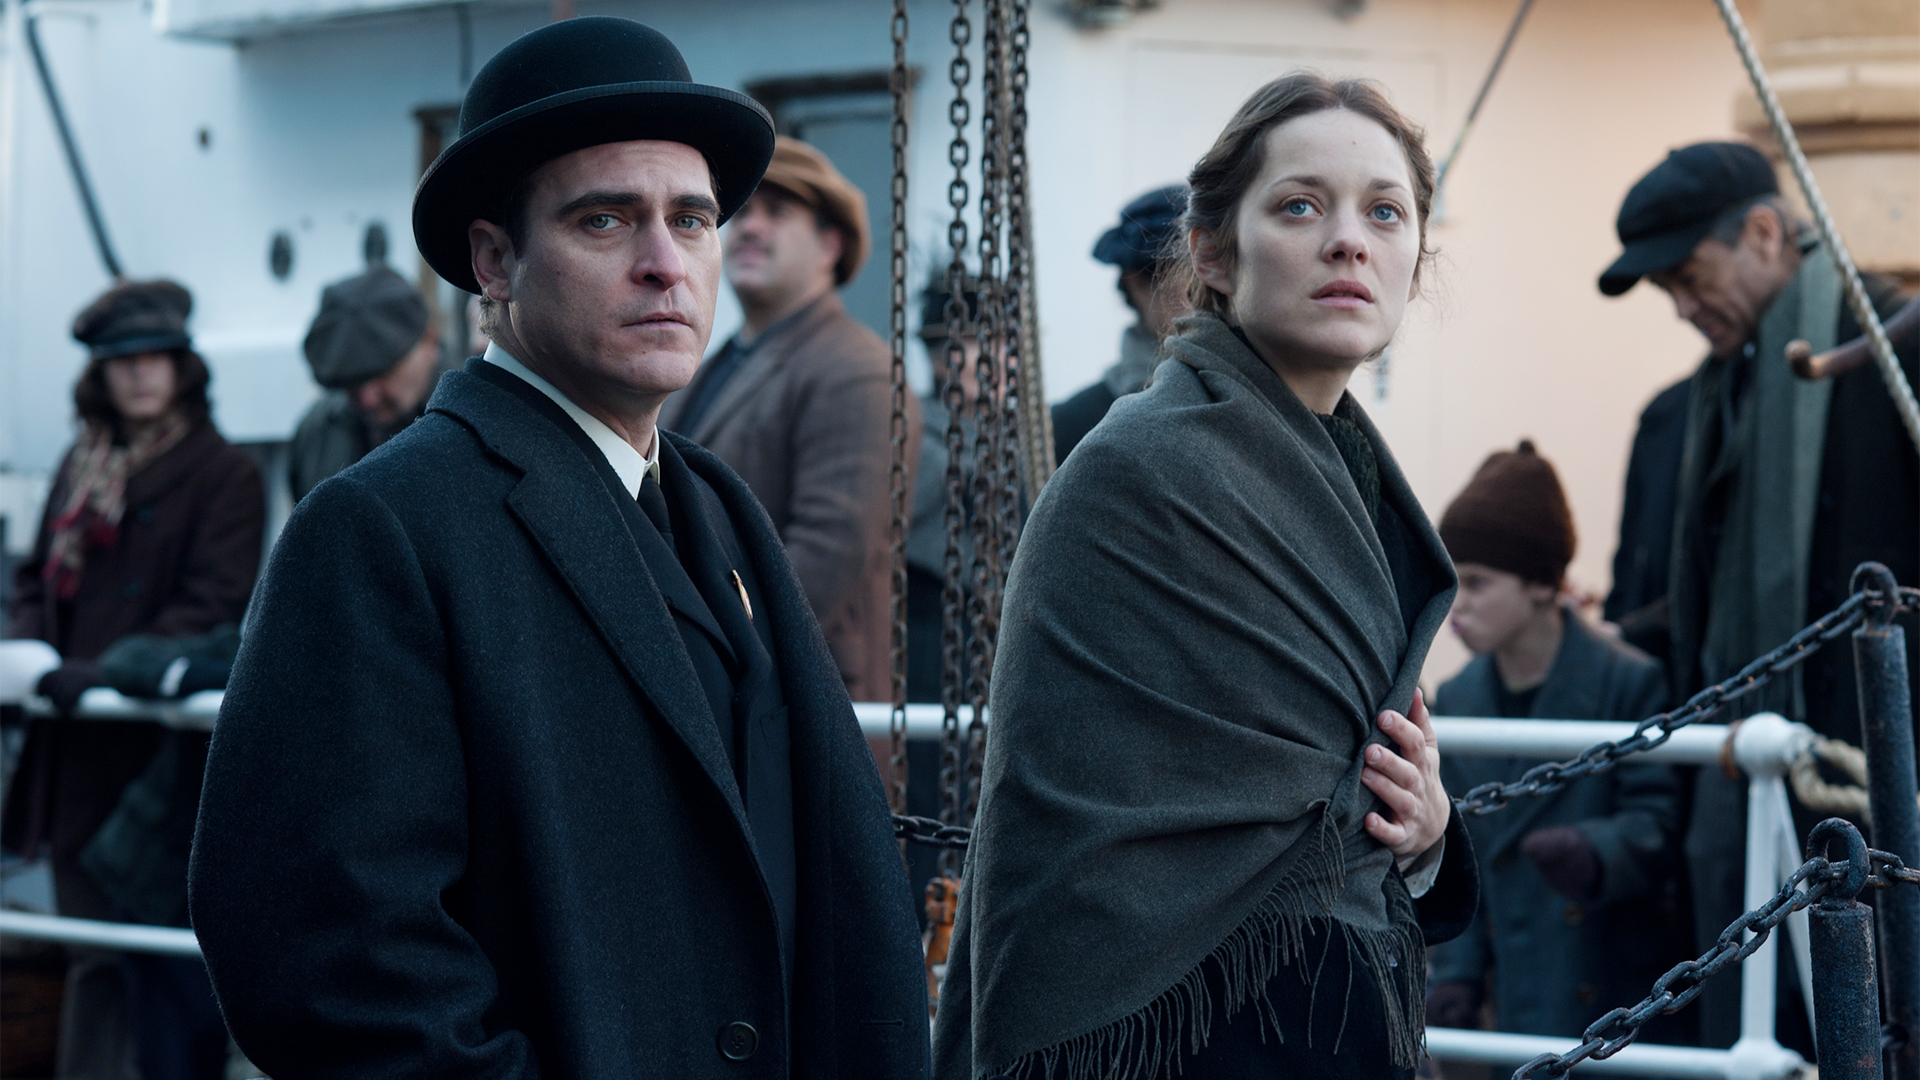 The Immigrant film review